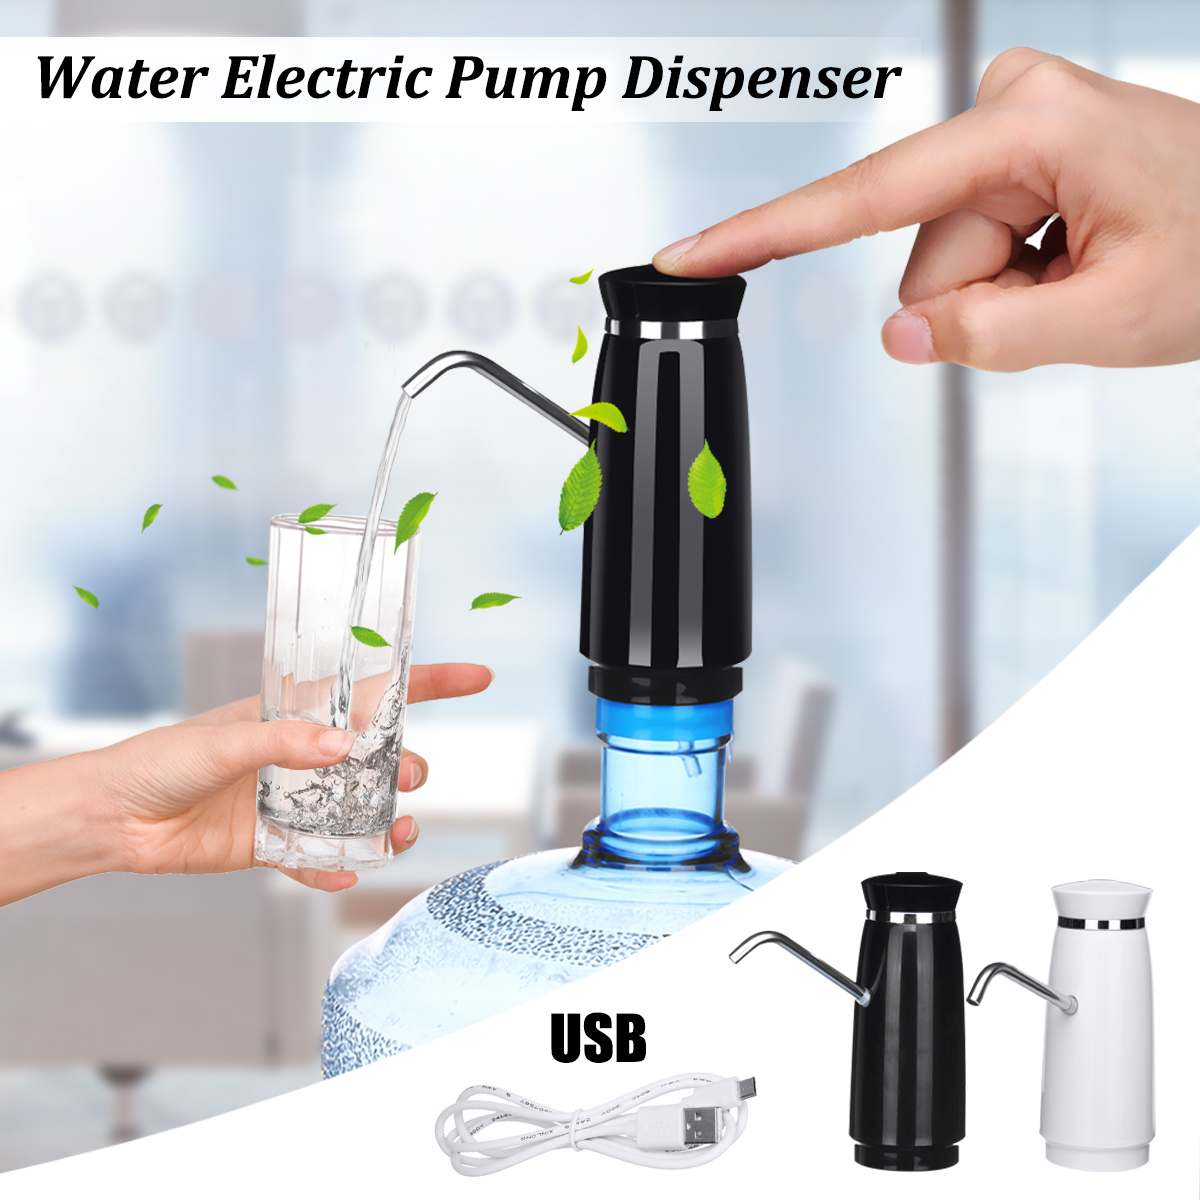 Wireless Automatic Electric Portable Water Pump Dispenser Gallon Drinking Water Bottle With Switch